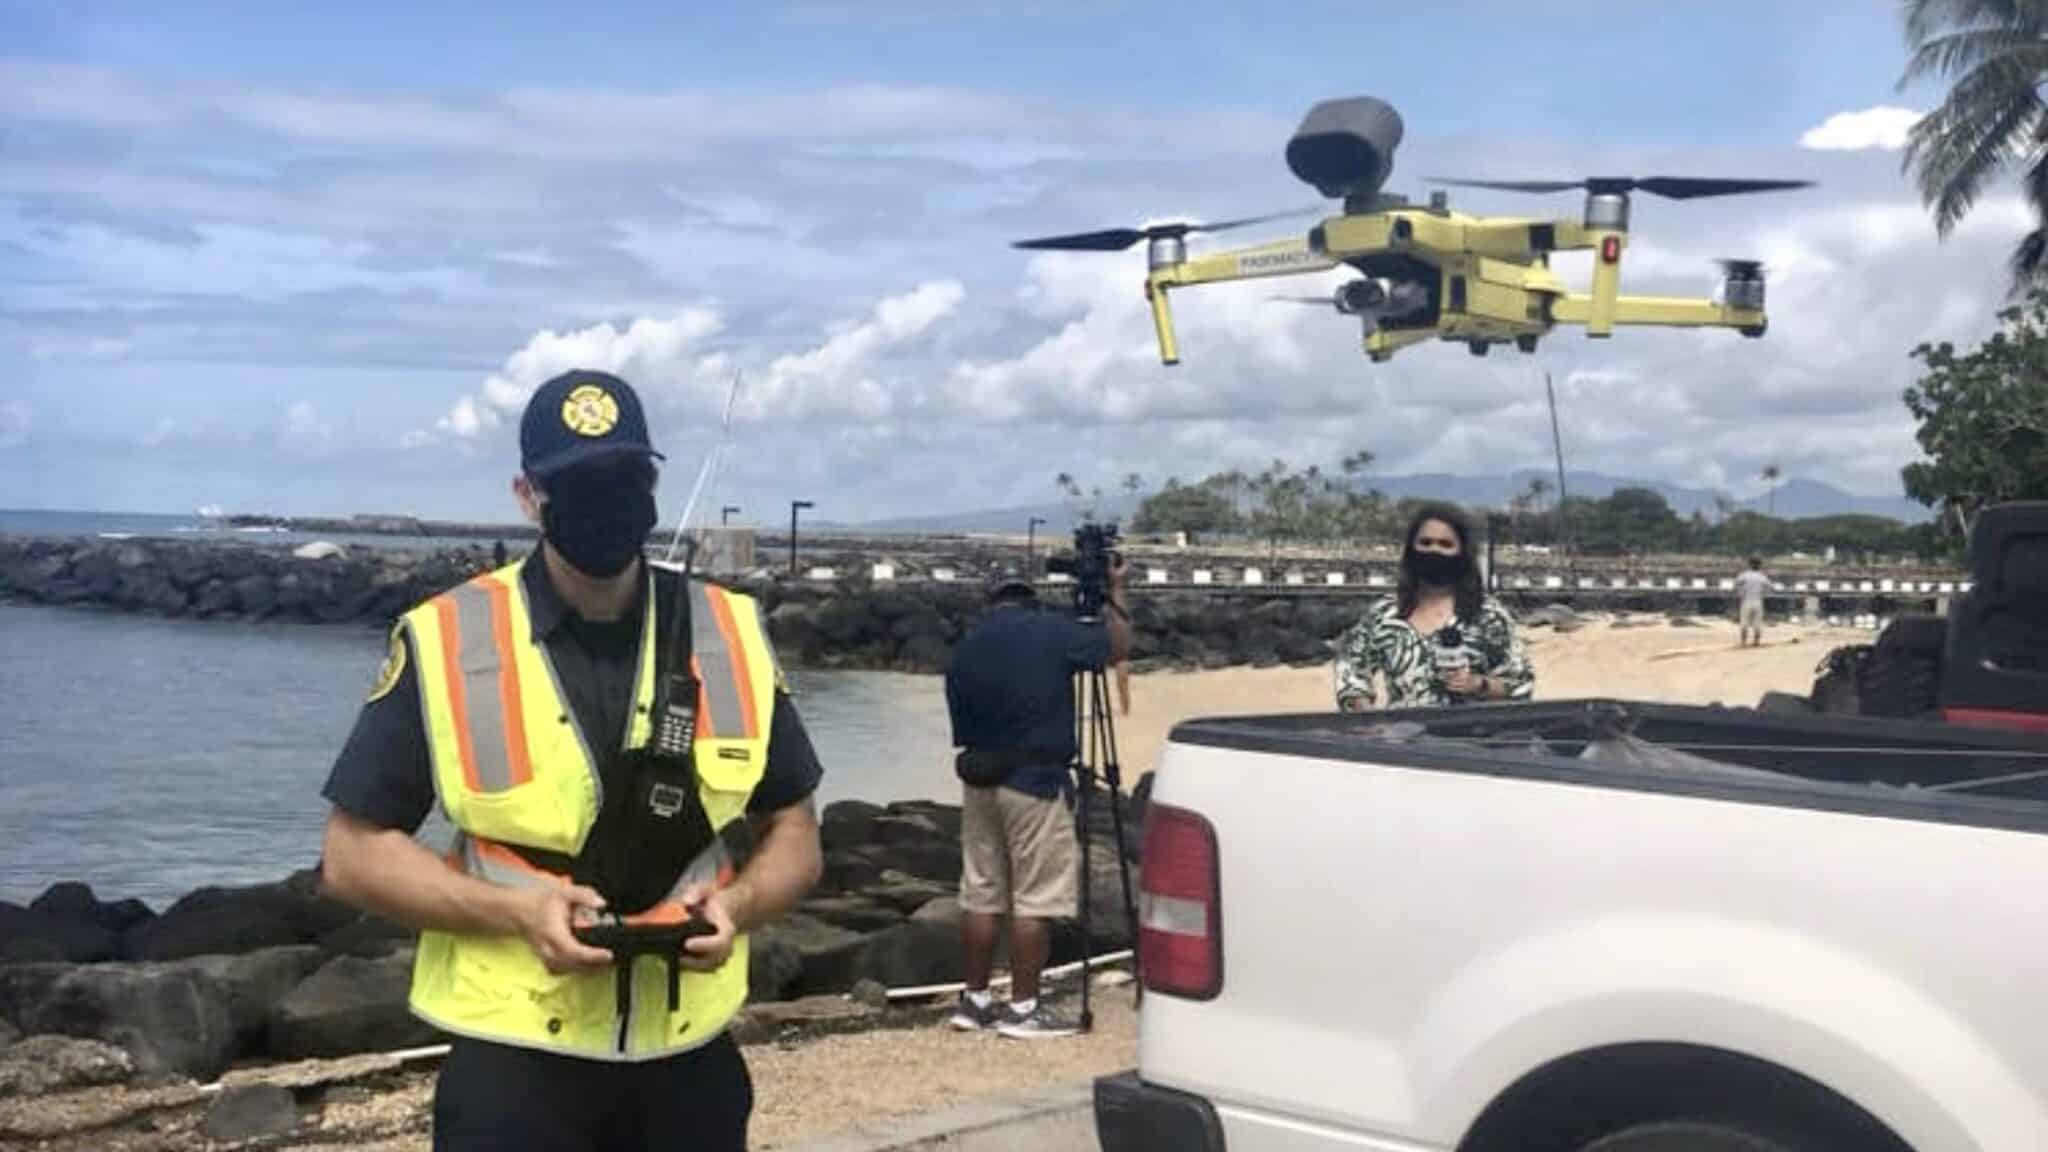 Honolulu Fire Department uses drones to enforce stay-at-home order at beaches